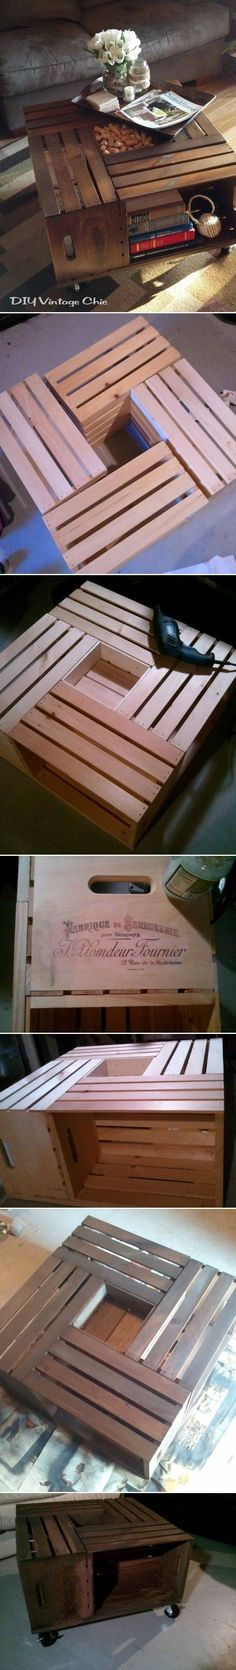 DIY Wine Crate Table crafts craft diy craft easy crafts diy ideas diy crafts do it yourself crafty easy diy diy furniture craft furniture diy table craft decor diy home decorations easy diy craft ideas diy tutorials. No need for wheels. Home Projects, Home Crafts, Furniture Projects, Diy Furniture, Diy Crafts, Crate Crafts, Crate Decor, Ottoman Furniture, Small Furniture